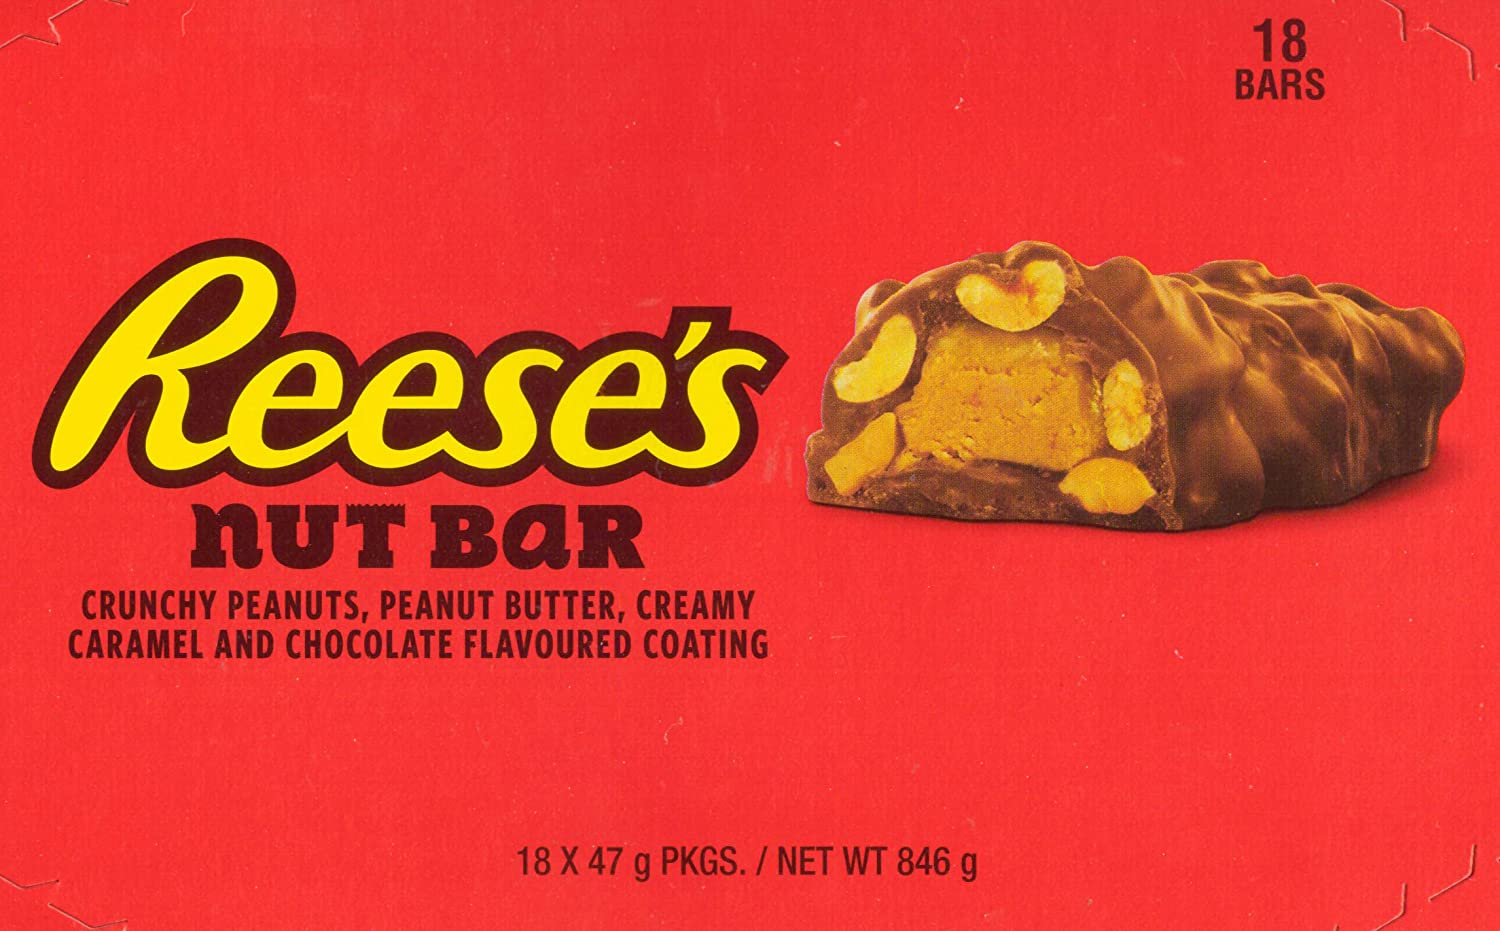 Amazon.com : Reeses Chocolate Peanut Butter Caramel Crunchy Nut Bar Snack   1.65 Ounce (18 Pack) : Grocery & Gourmet Food